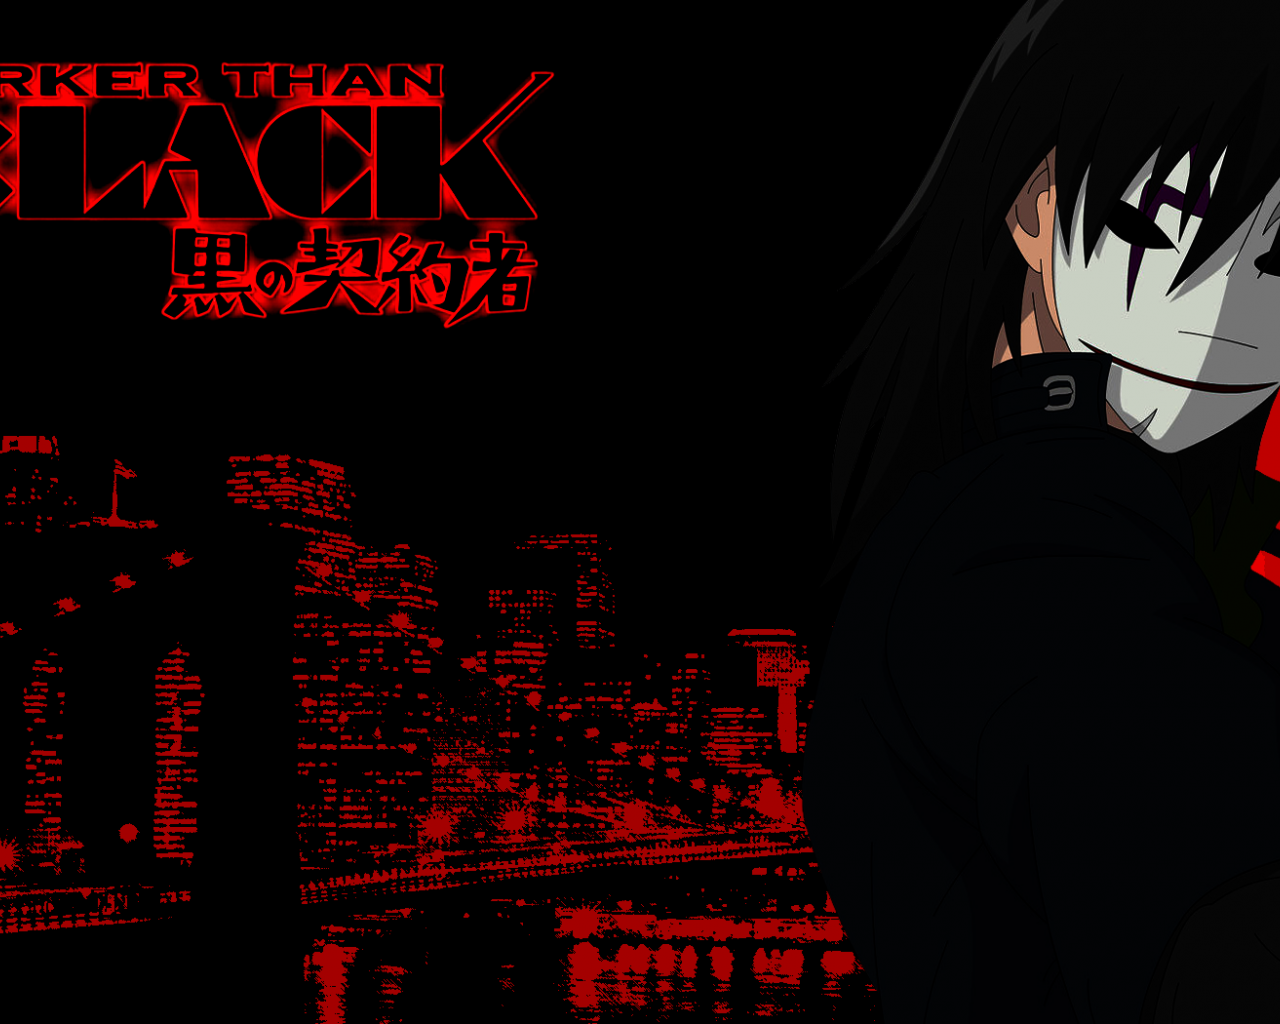 Free Download Darker Than Black Hei And Yin 1680x1050 For Your